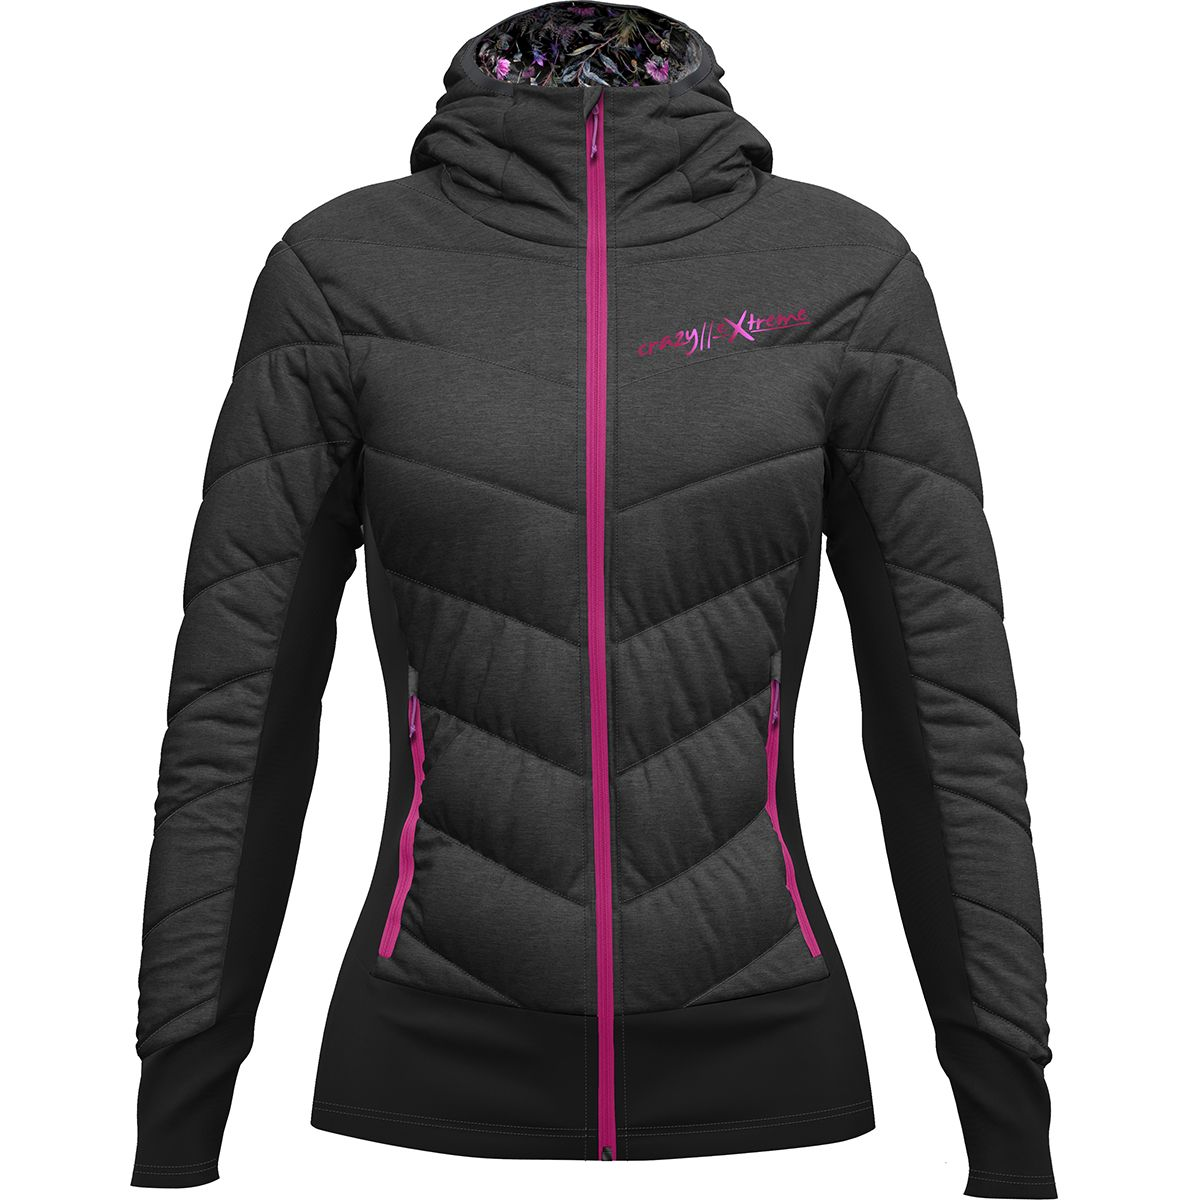 Crazy Idea Damen Feel Jacke (Größe XS, Grau) | Isolationsjacken > Damen